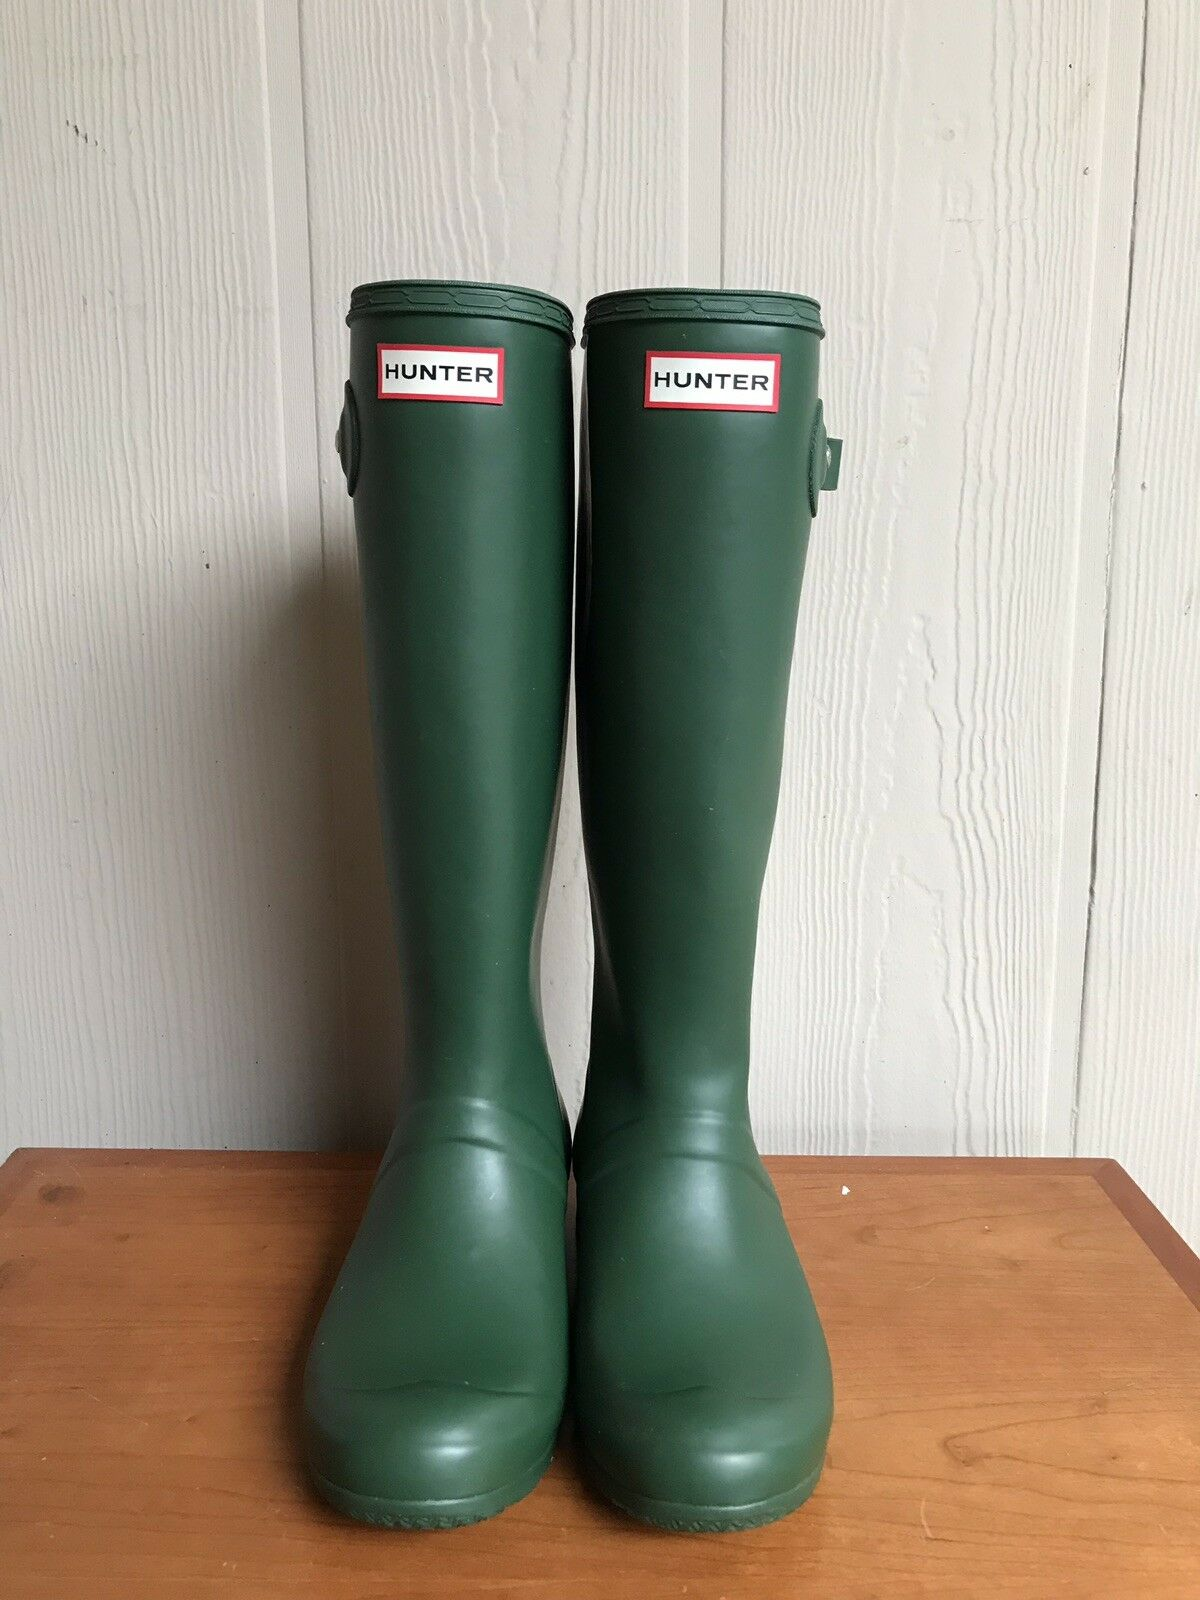 Orginal Hunter stivali US 6(F) 5(M) EU 37 verde